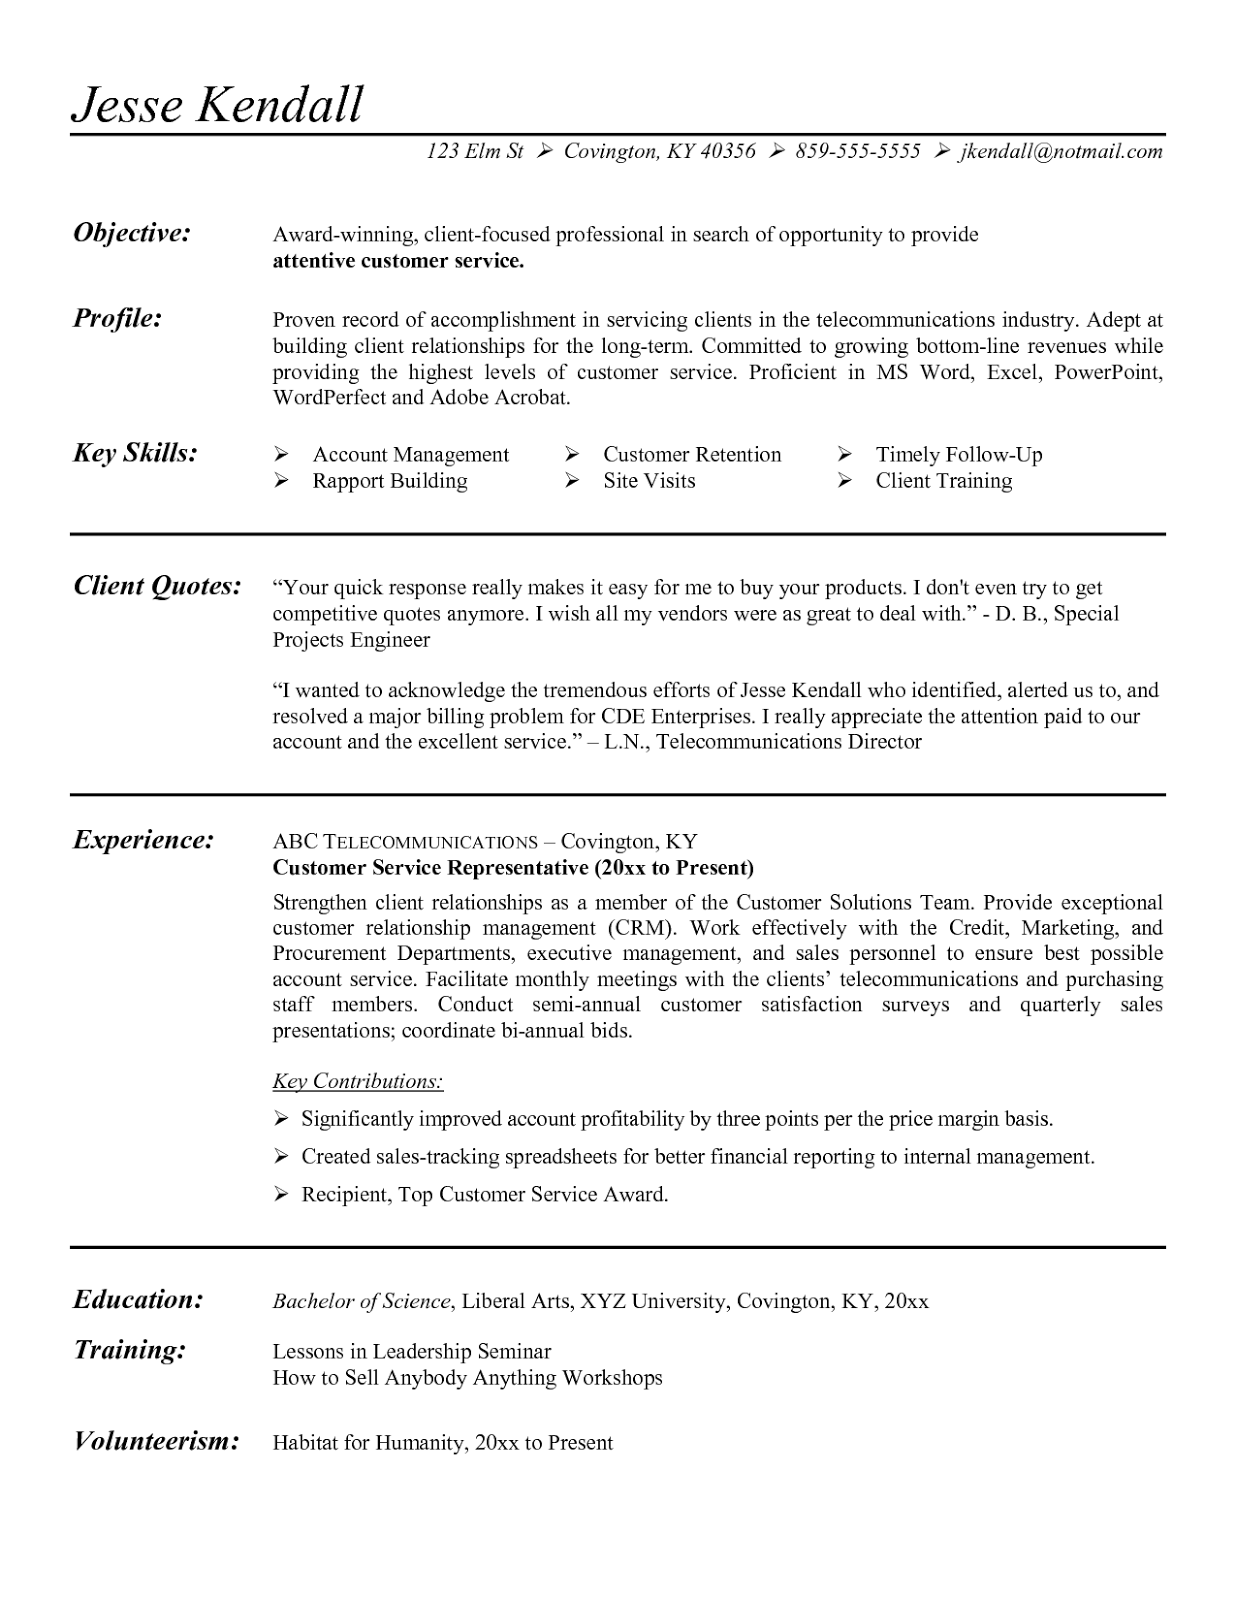 sample of customer service resume resume client service example 2bcustomer2bservice2bresume - How To Write A Customer Service Resume